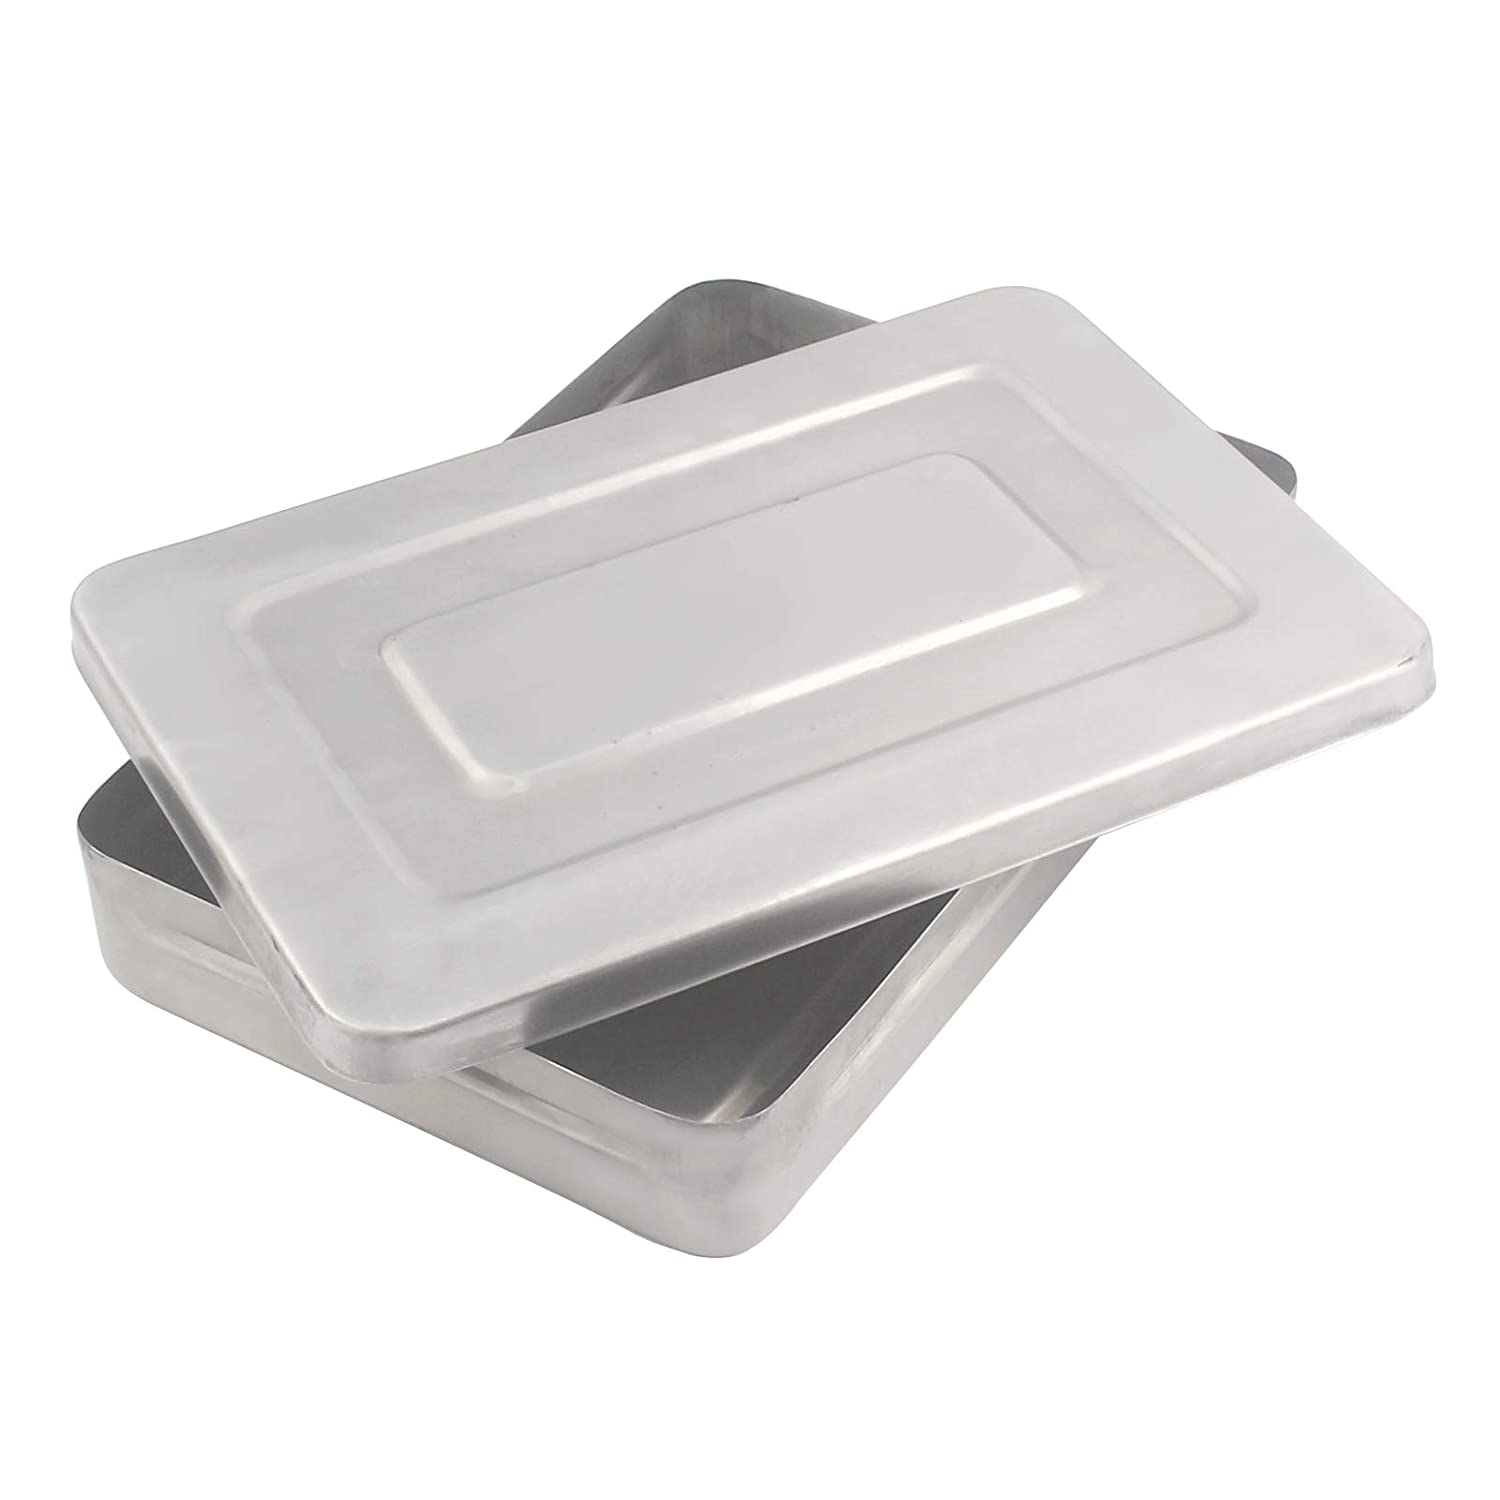 DDP Instruments Box 30x20x5 cm Stainless Steel Surgi Instruments